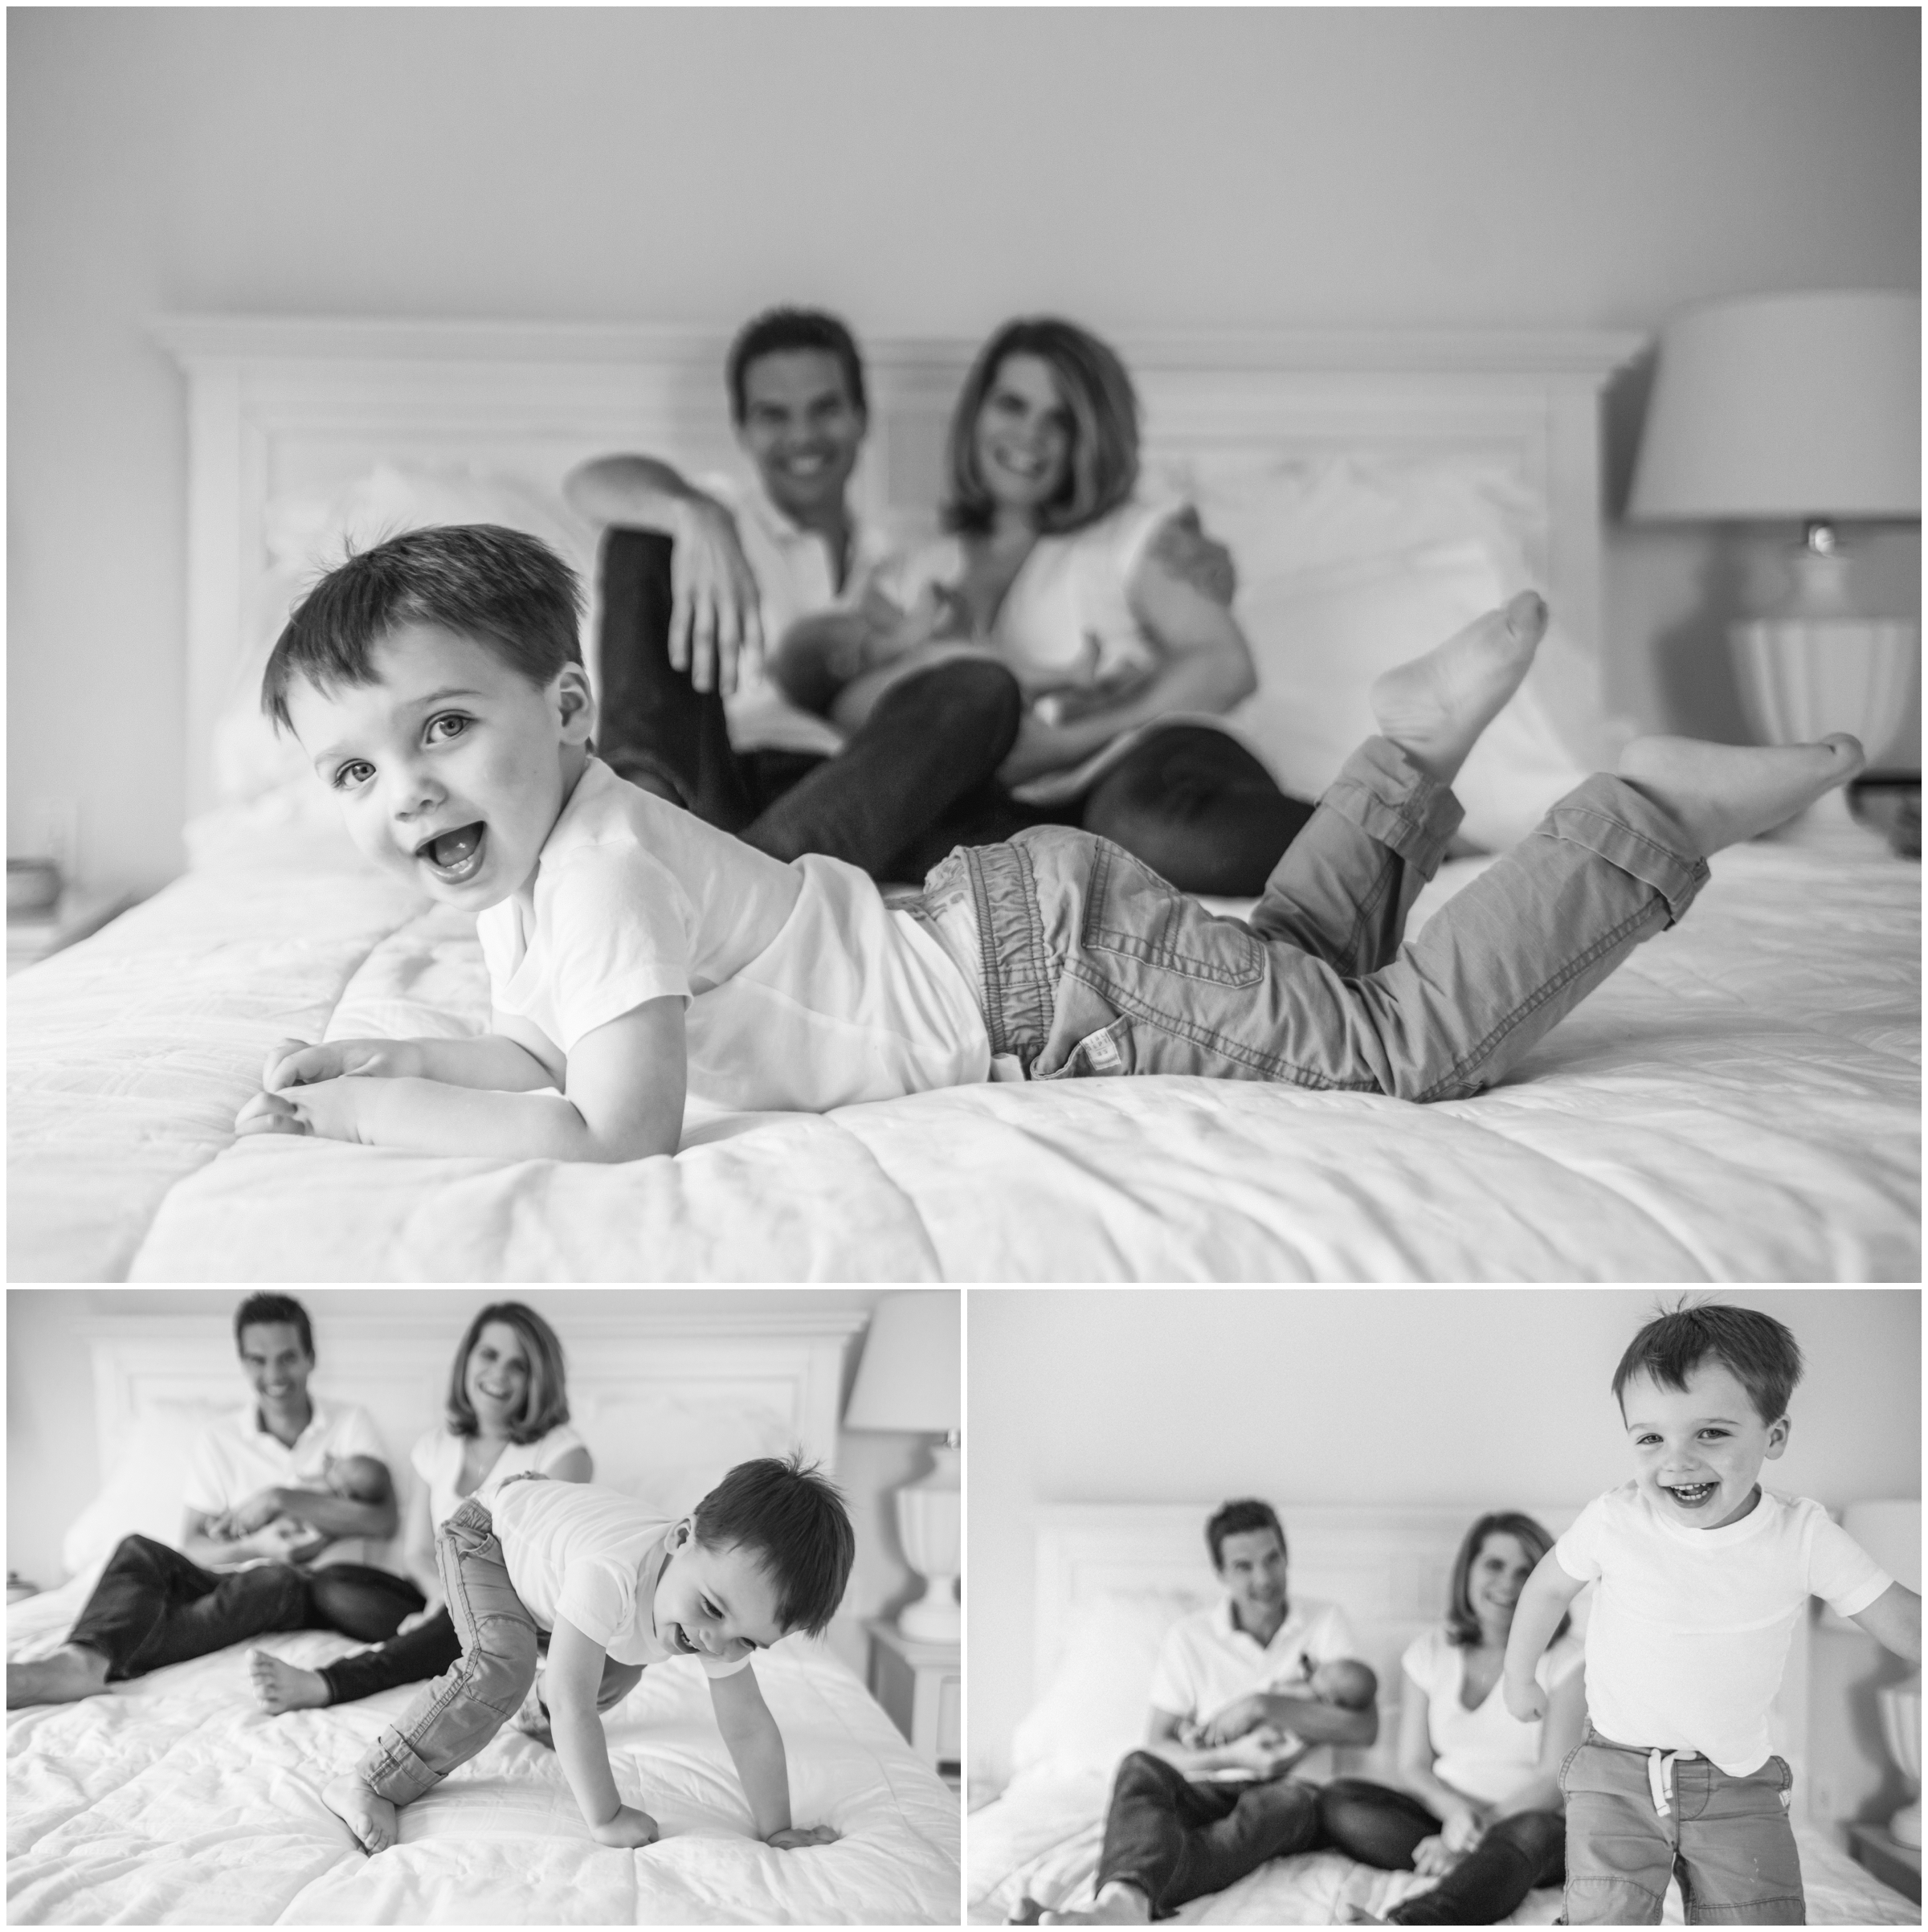 Lifestyle Newborn with Family by Just Maggie Photography - Los Angeles Newborn Photographer